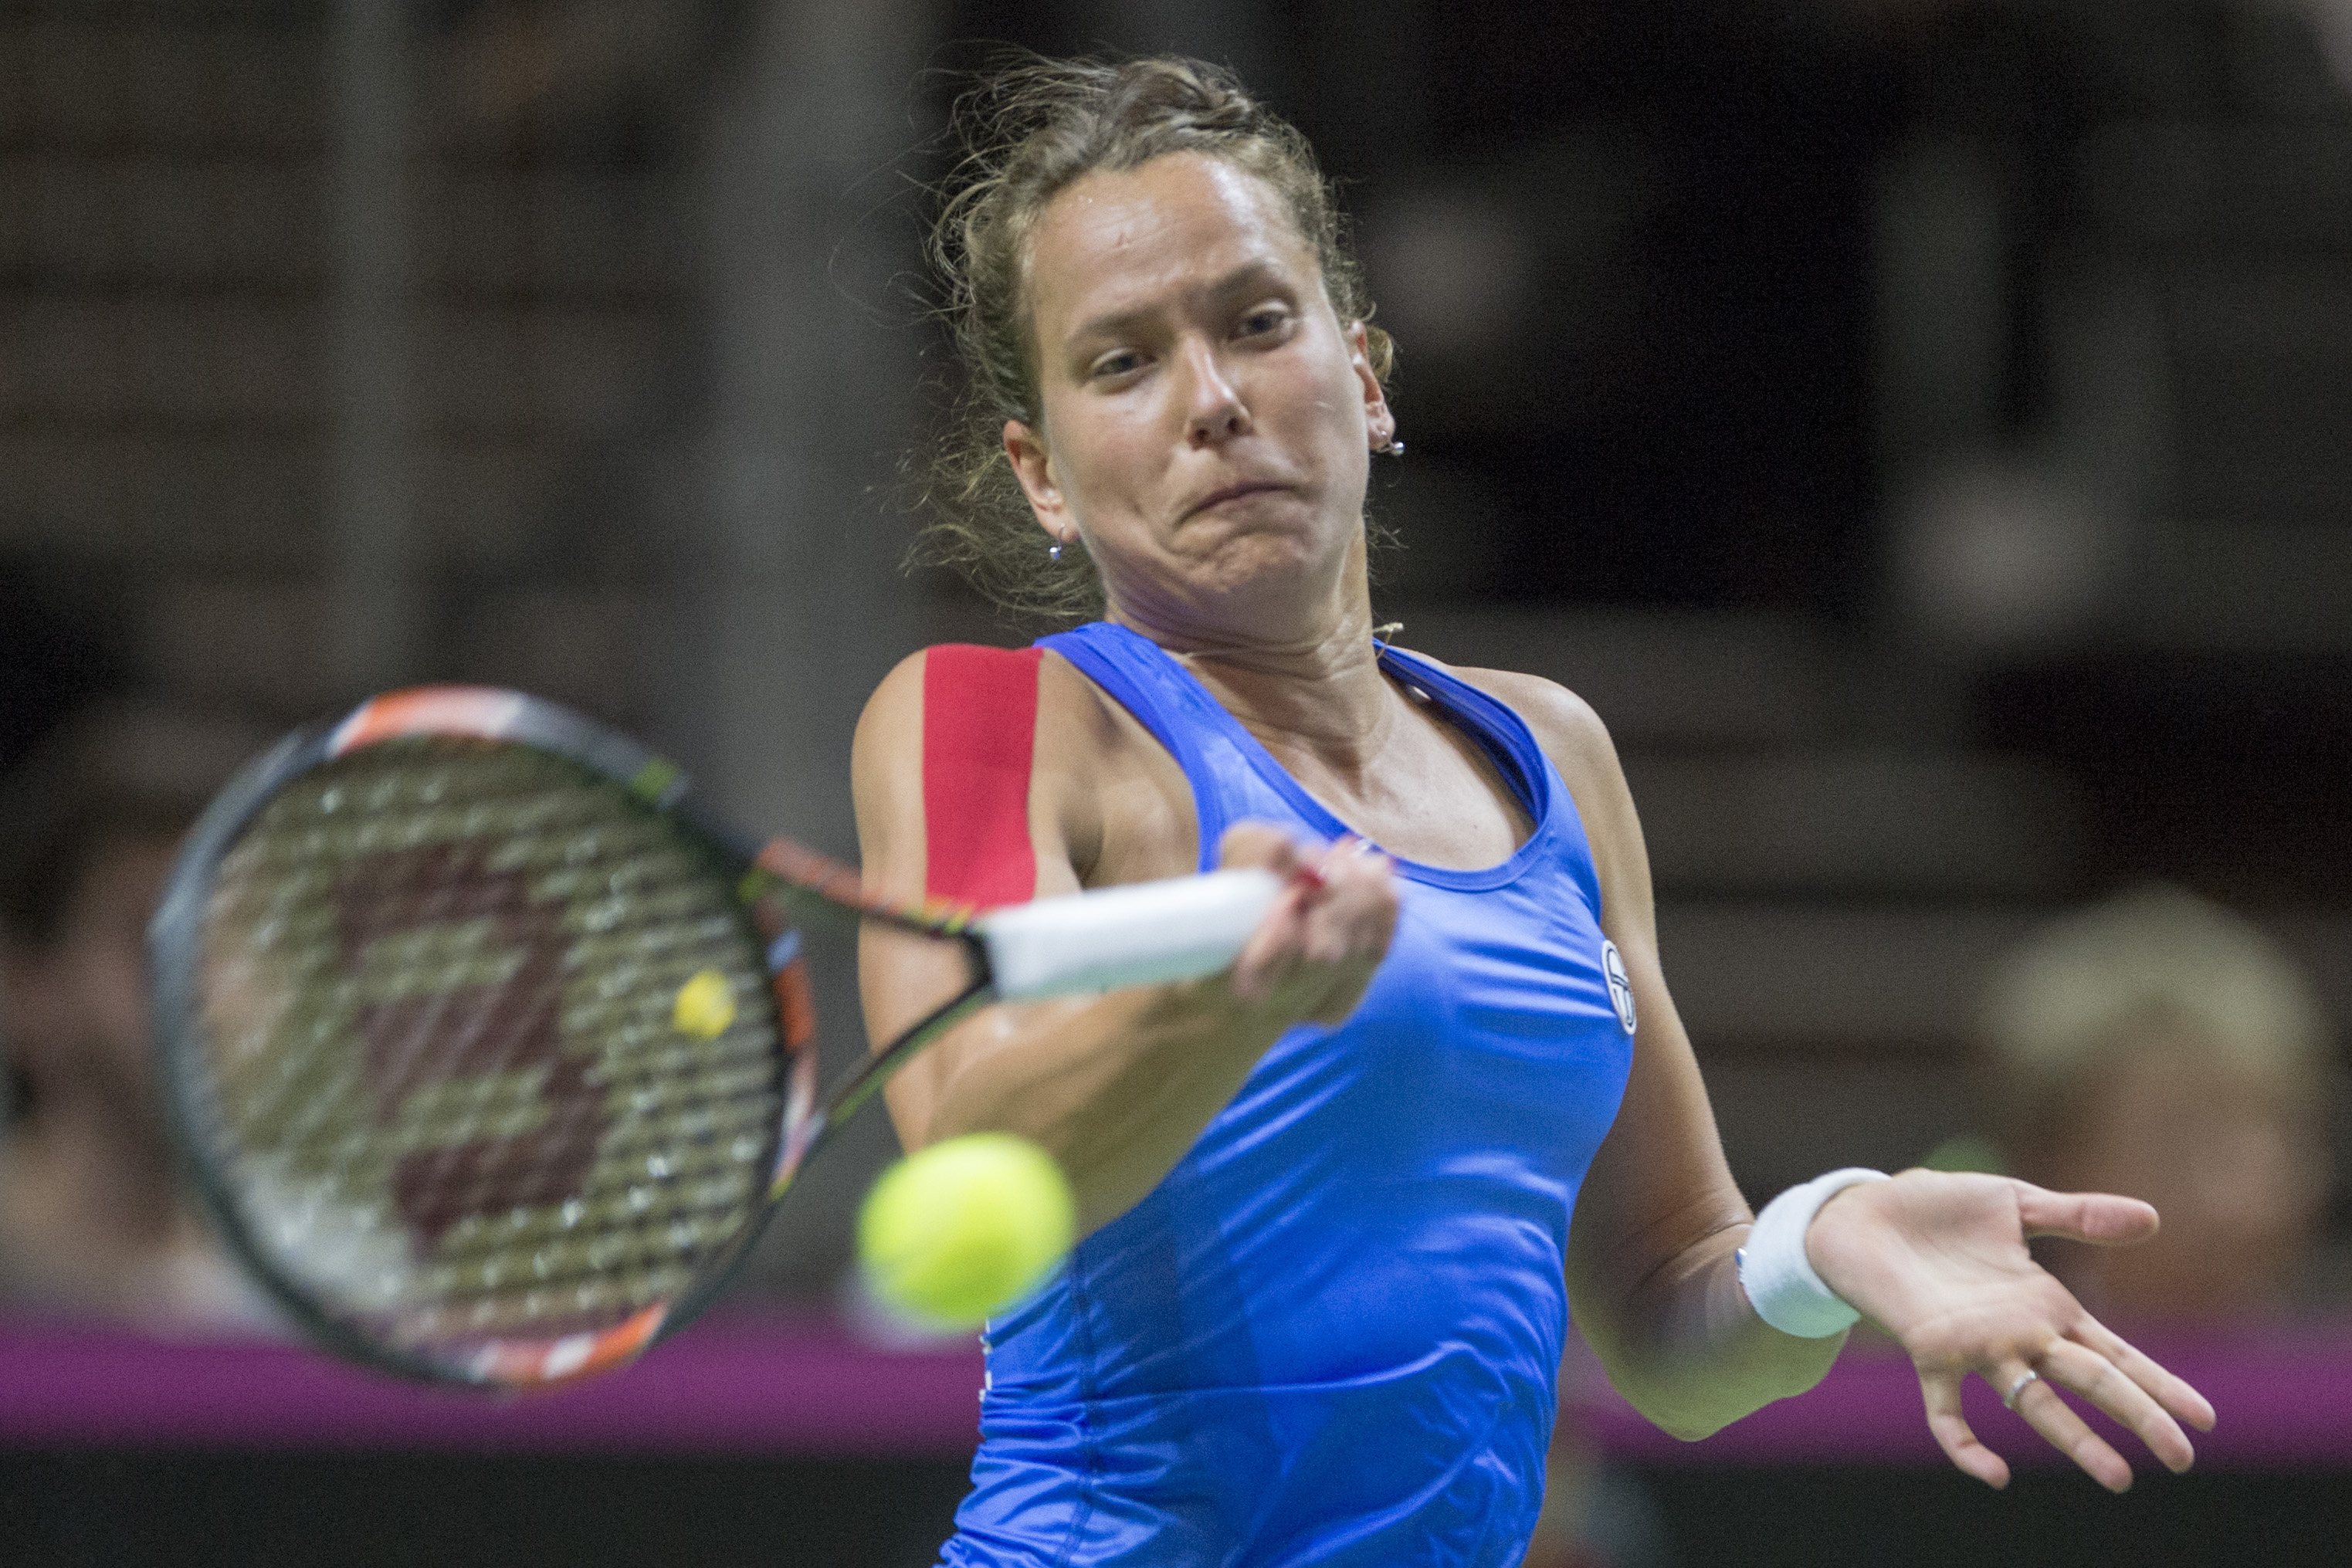 Barbora Strycova of the Czech Republic returns a ball to t Switzerland's Timea Bacsinszky, during their Fed Cup World Group semifinal tennis match between Switzerland and the Czech Republic, in Lucerne, Switzerland, Saturday, April 16, 2016. (Urs Flueeler